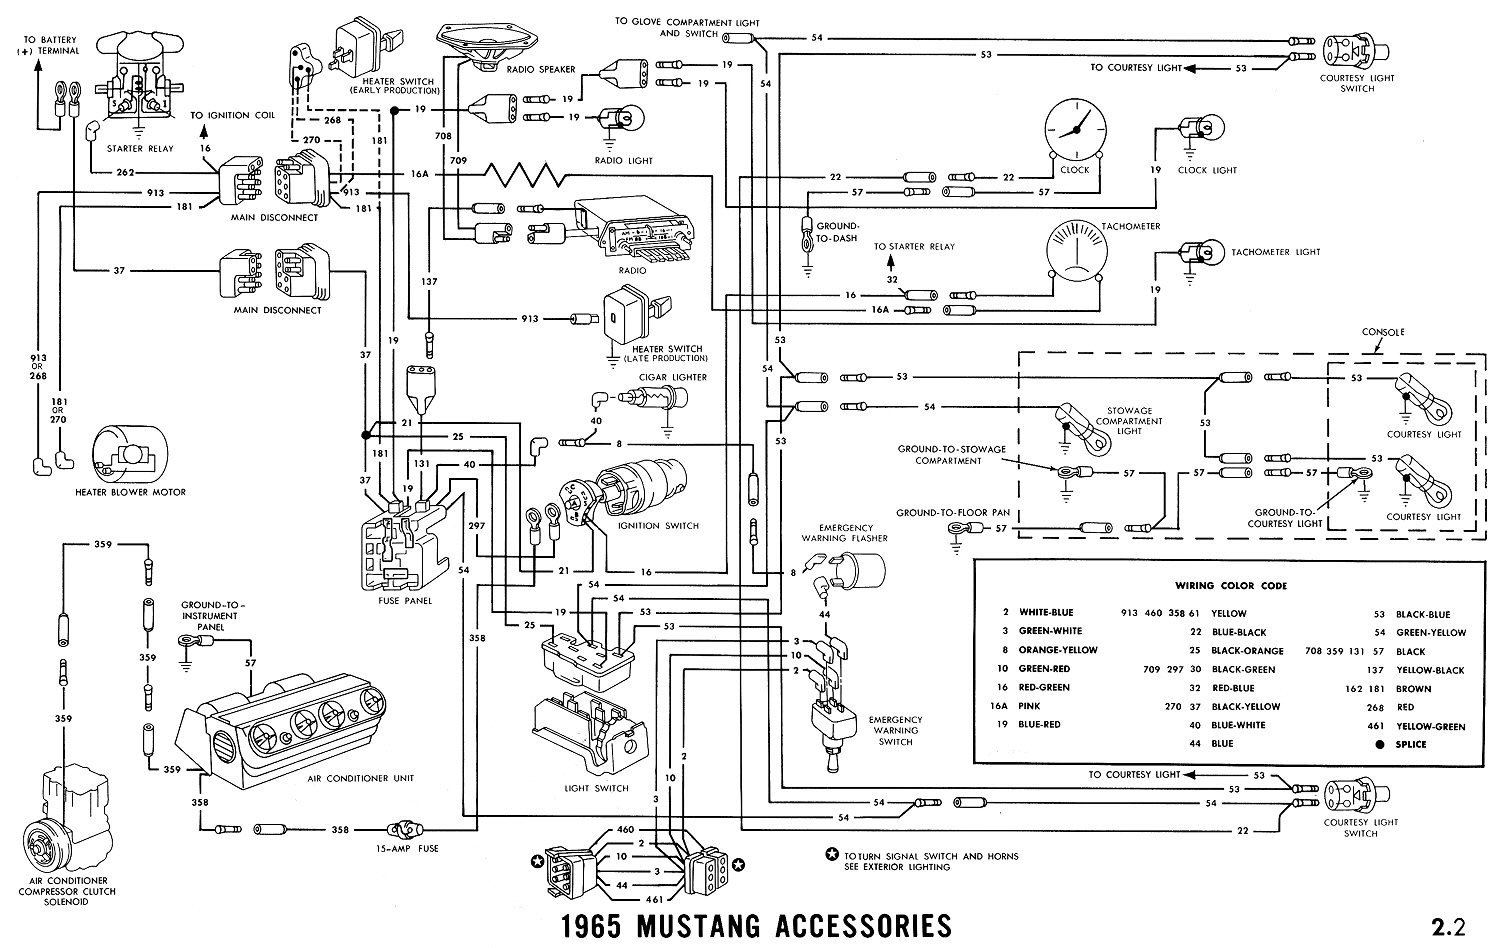 1965i 1965 mustang wiring diagrams average joe restoration 1970 mustang wiring diagram at soozxer.org